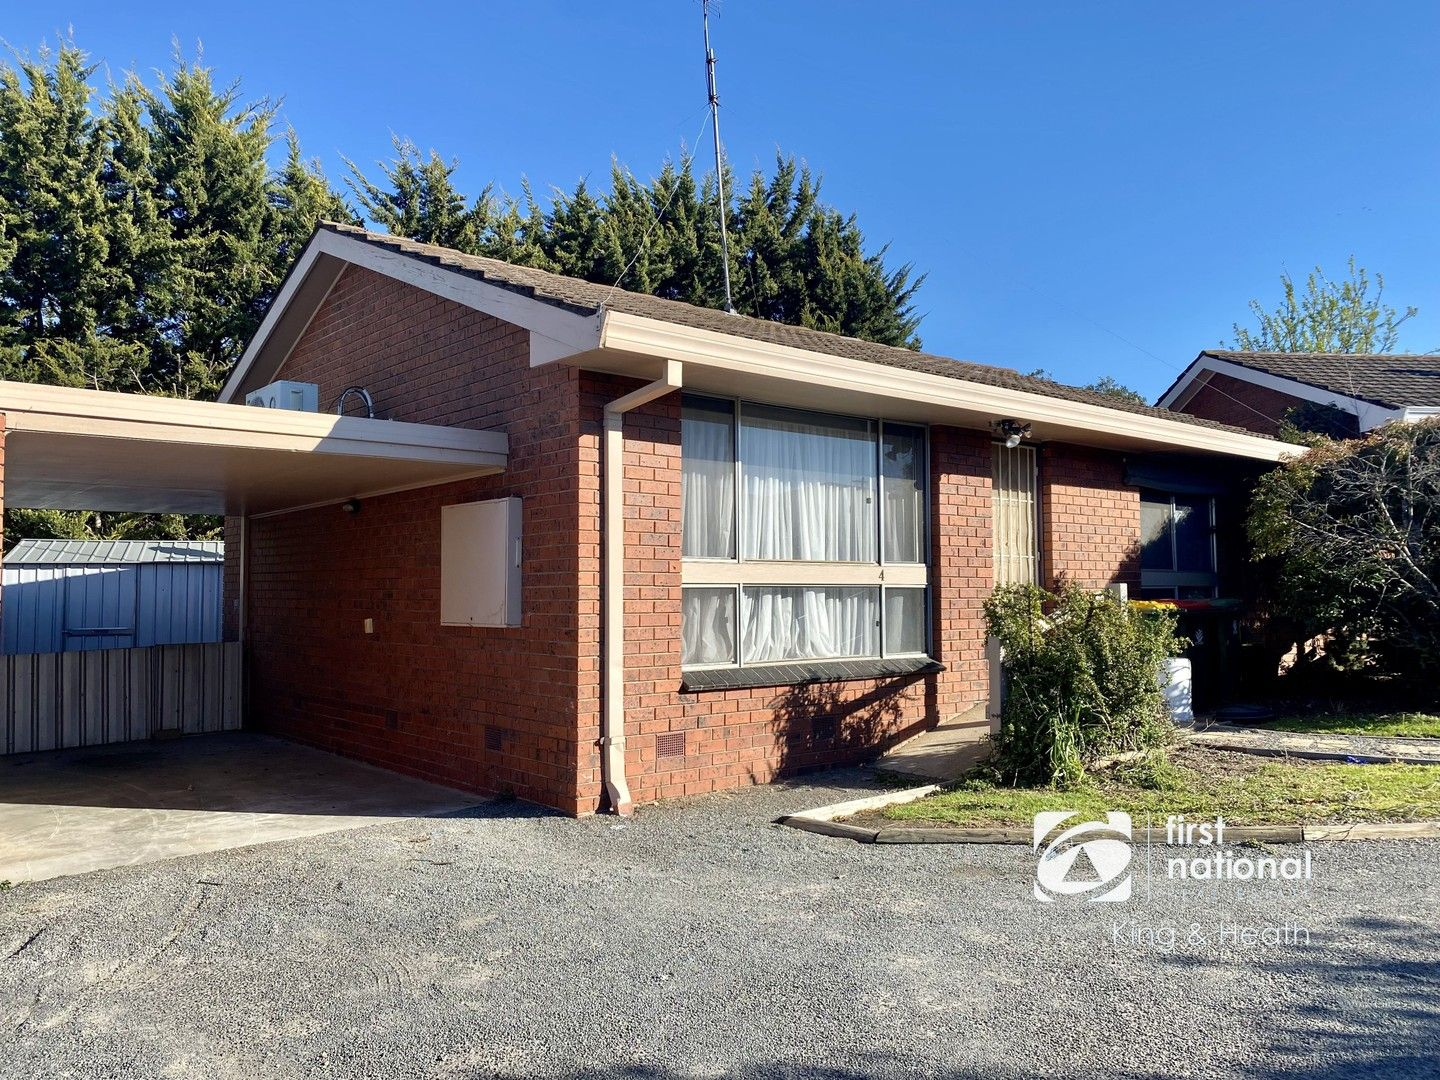 4/101 Day Street, Bairnsdale VIC 3875, Image 0